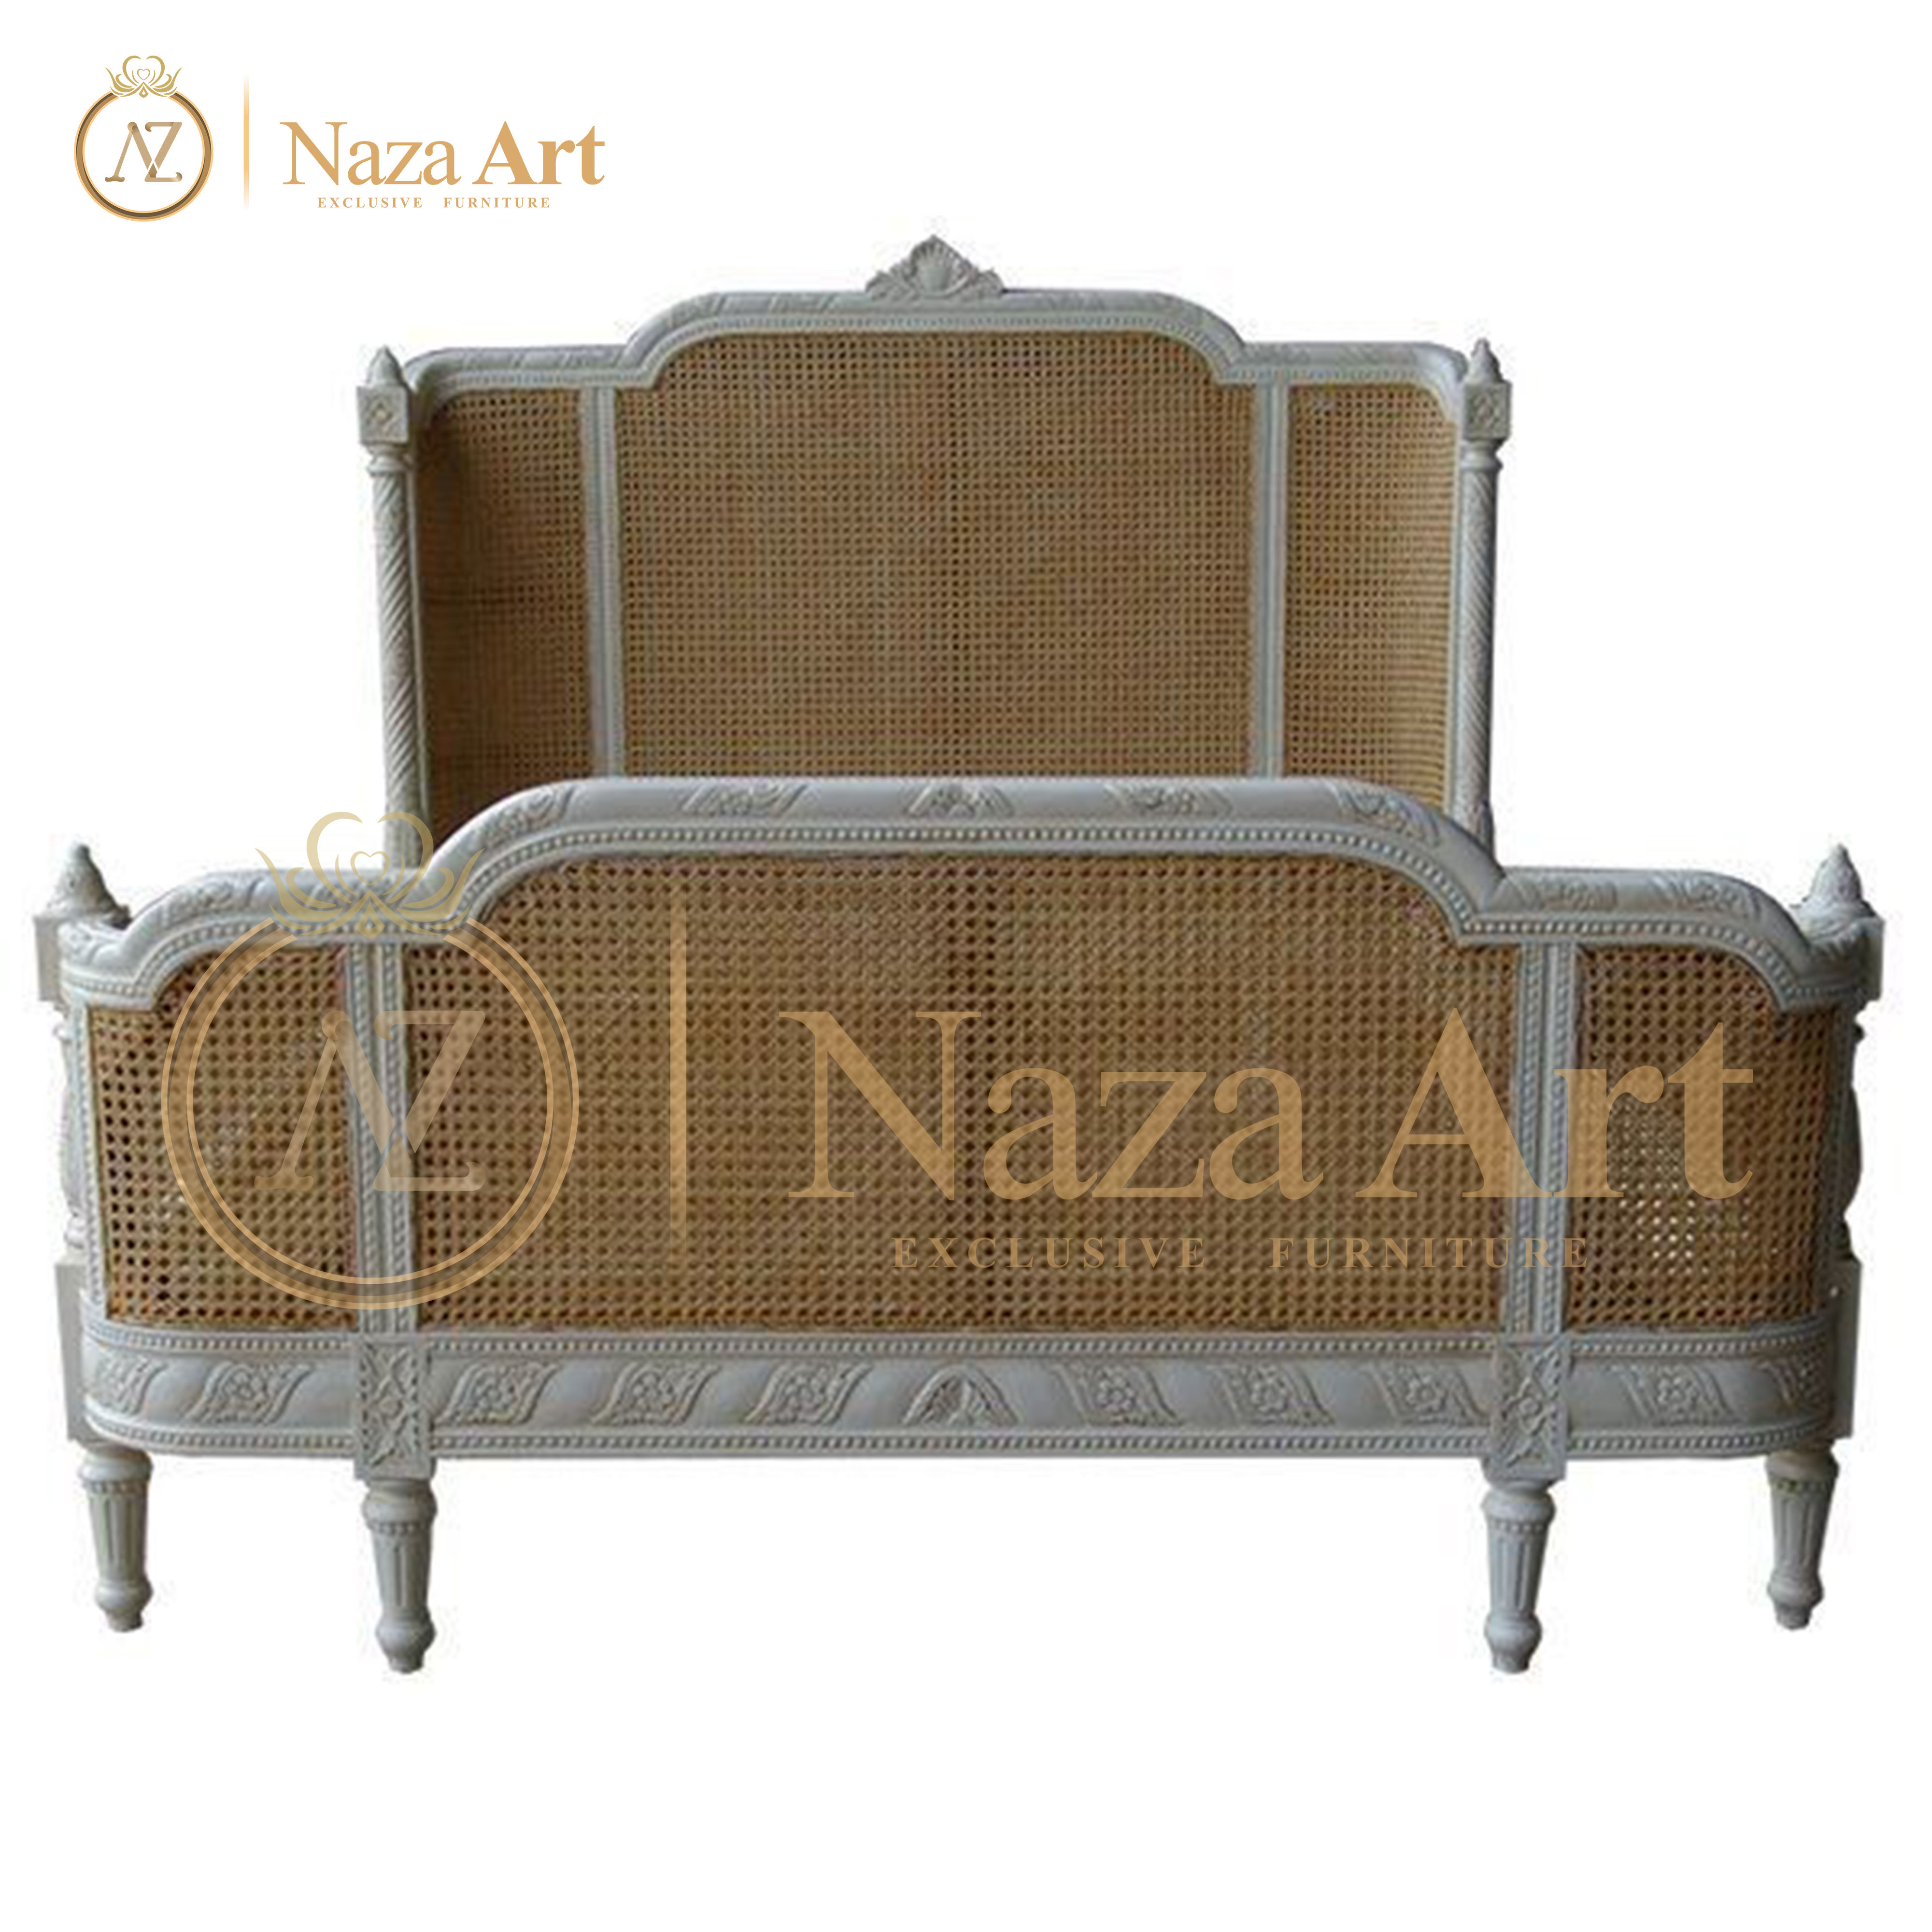 Rattan Bed Simple Desaign Beautifully Hand Carved For Bedroom Furniture